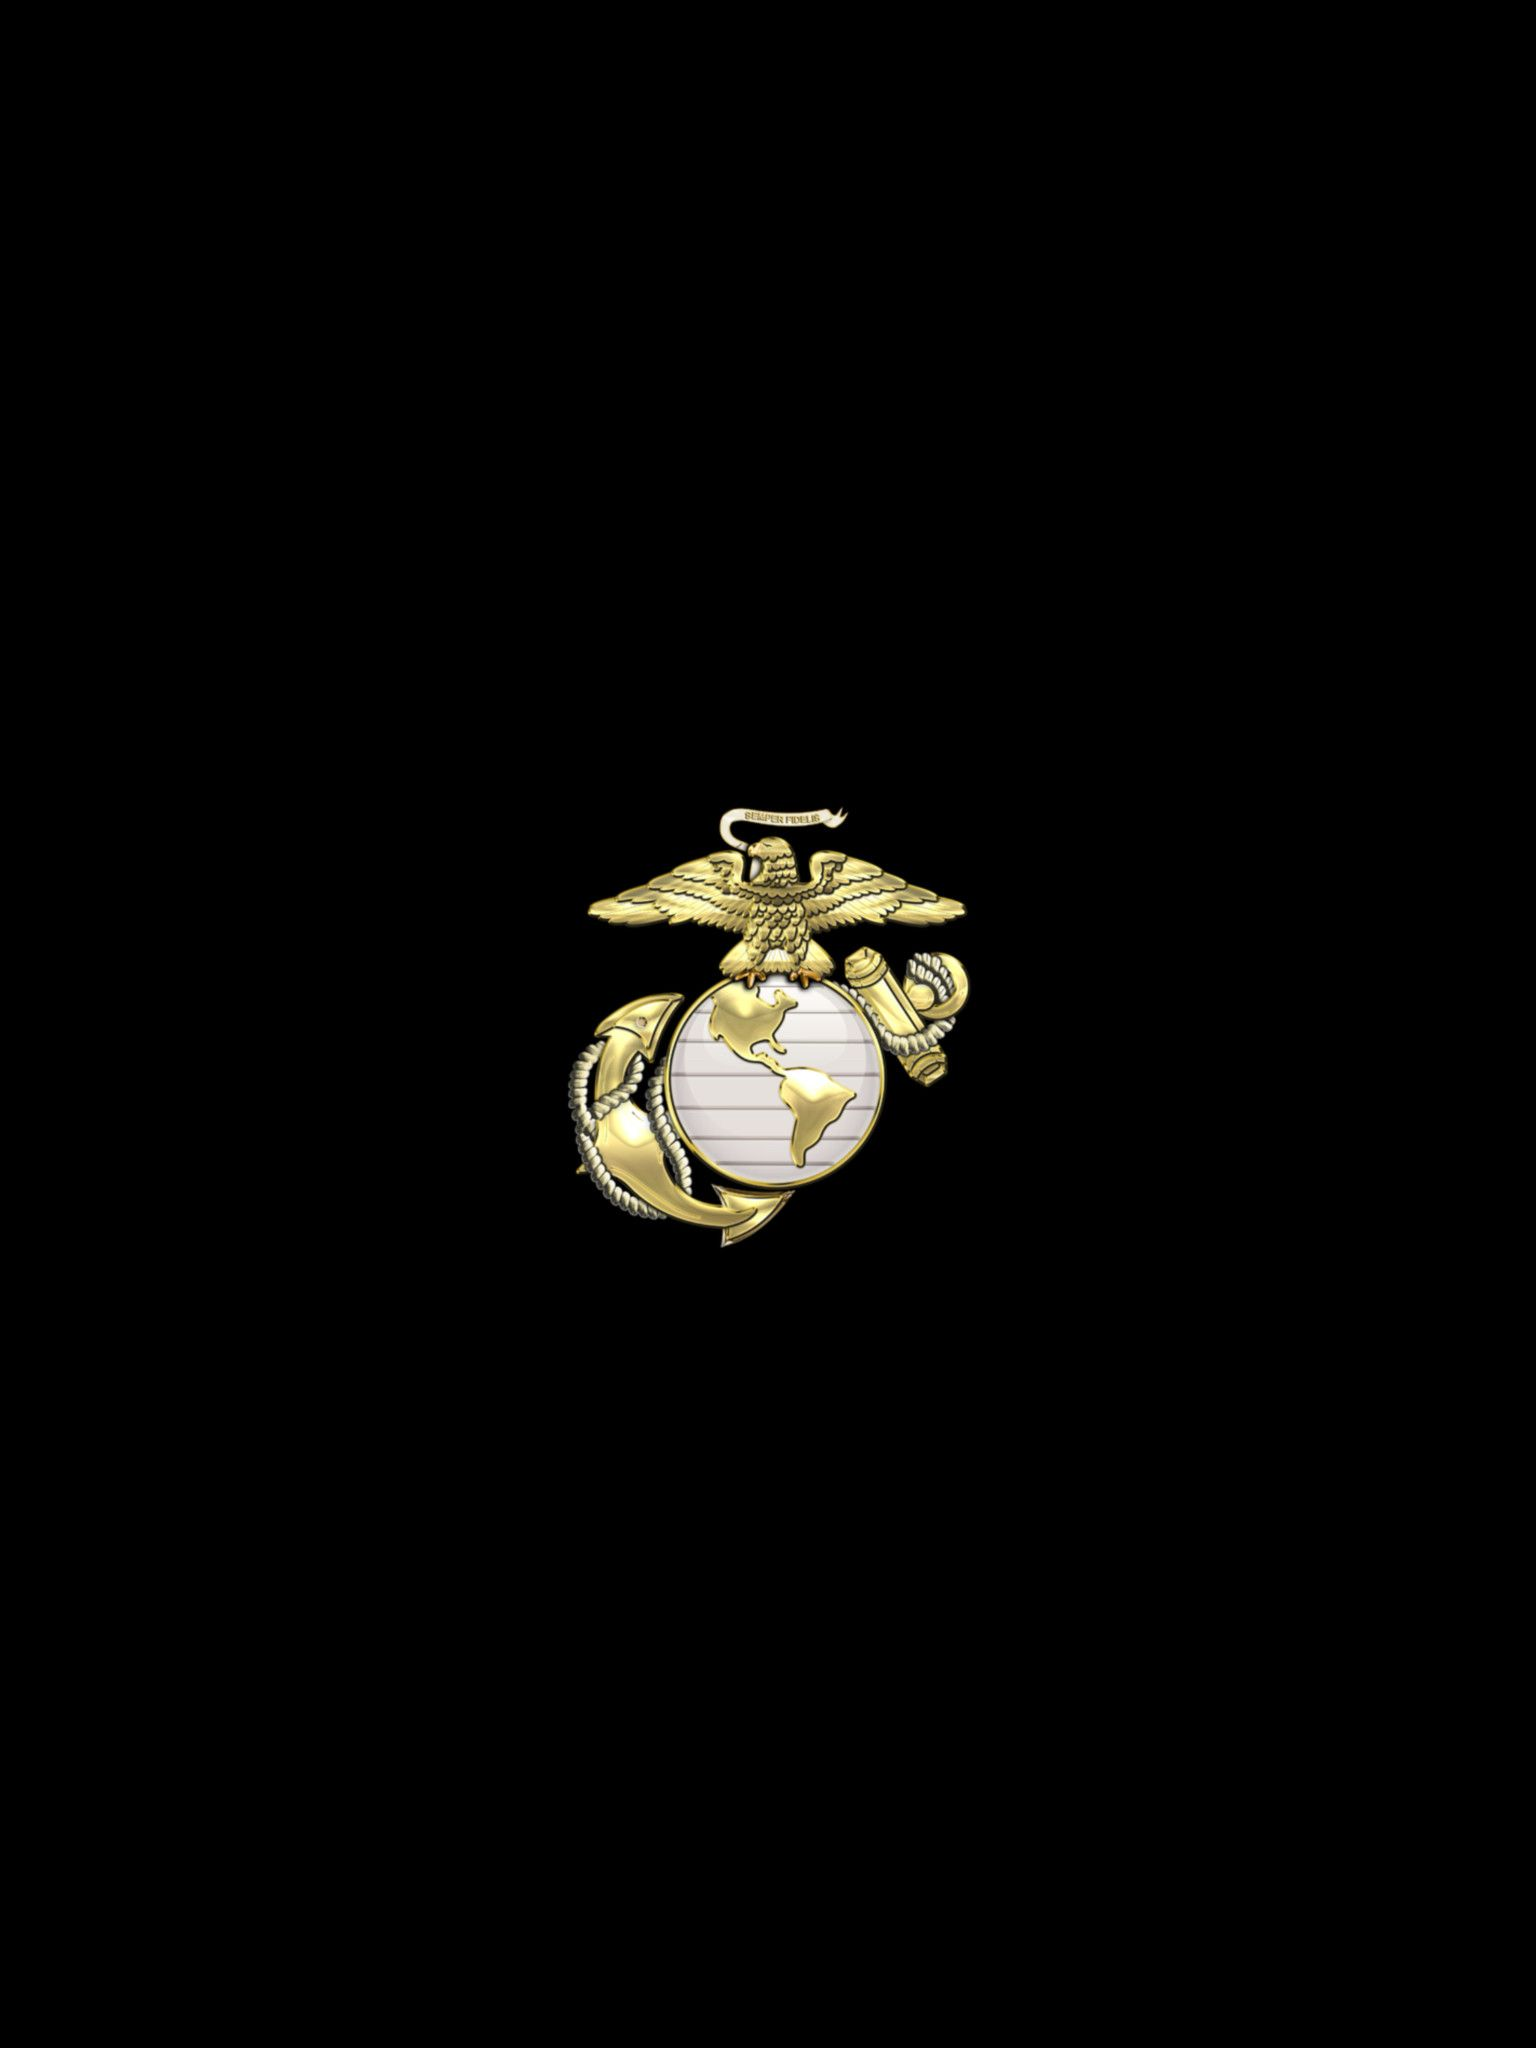 Us Marine Corps Iphone Wallpapers Top Free Us Marine Corps